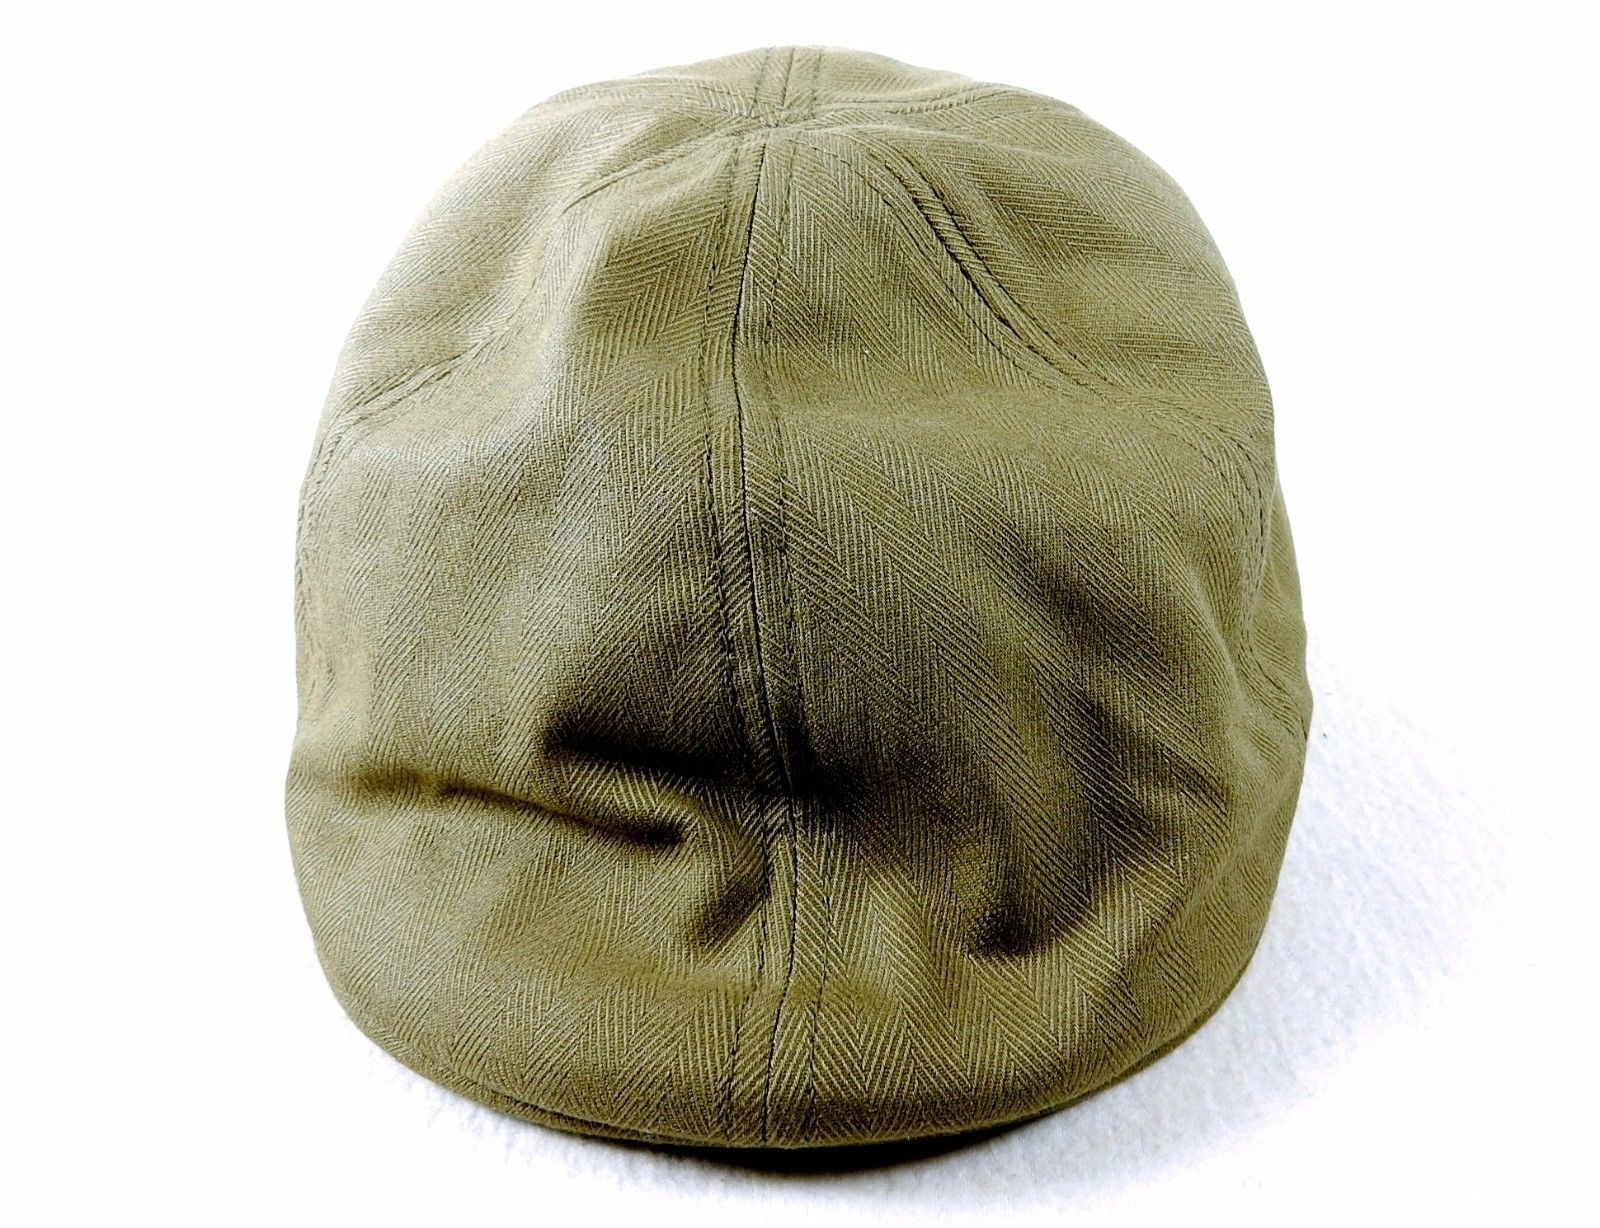 Olive Green Driver's Cap, Spandex Headband, One Size Fits Most, FlexFit #9180